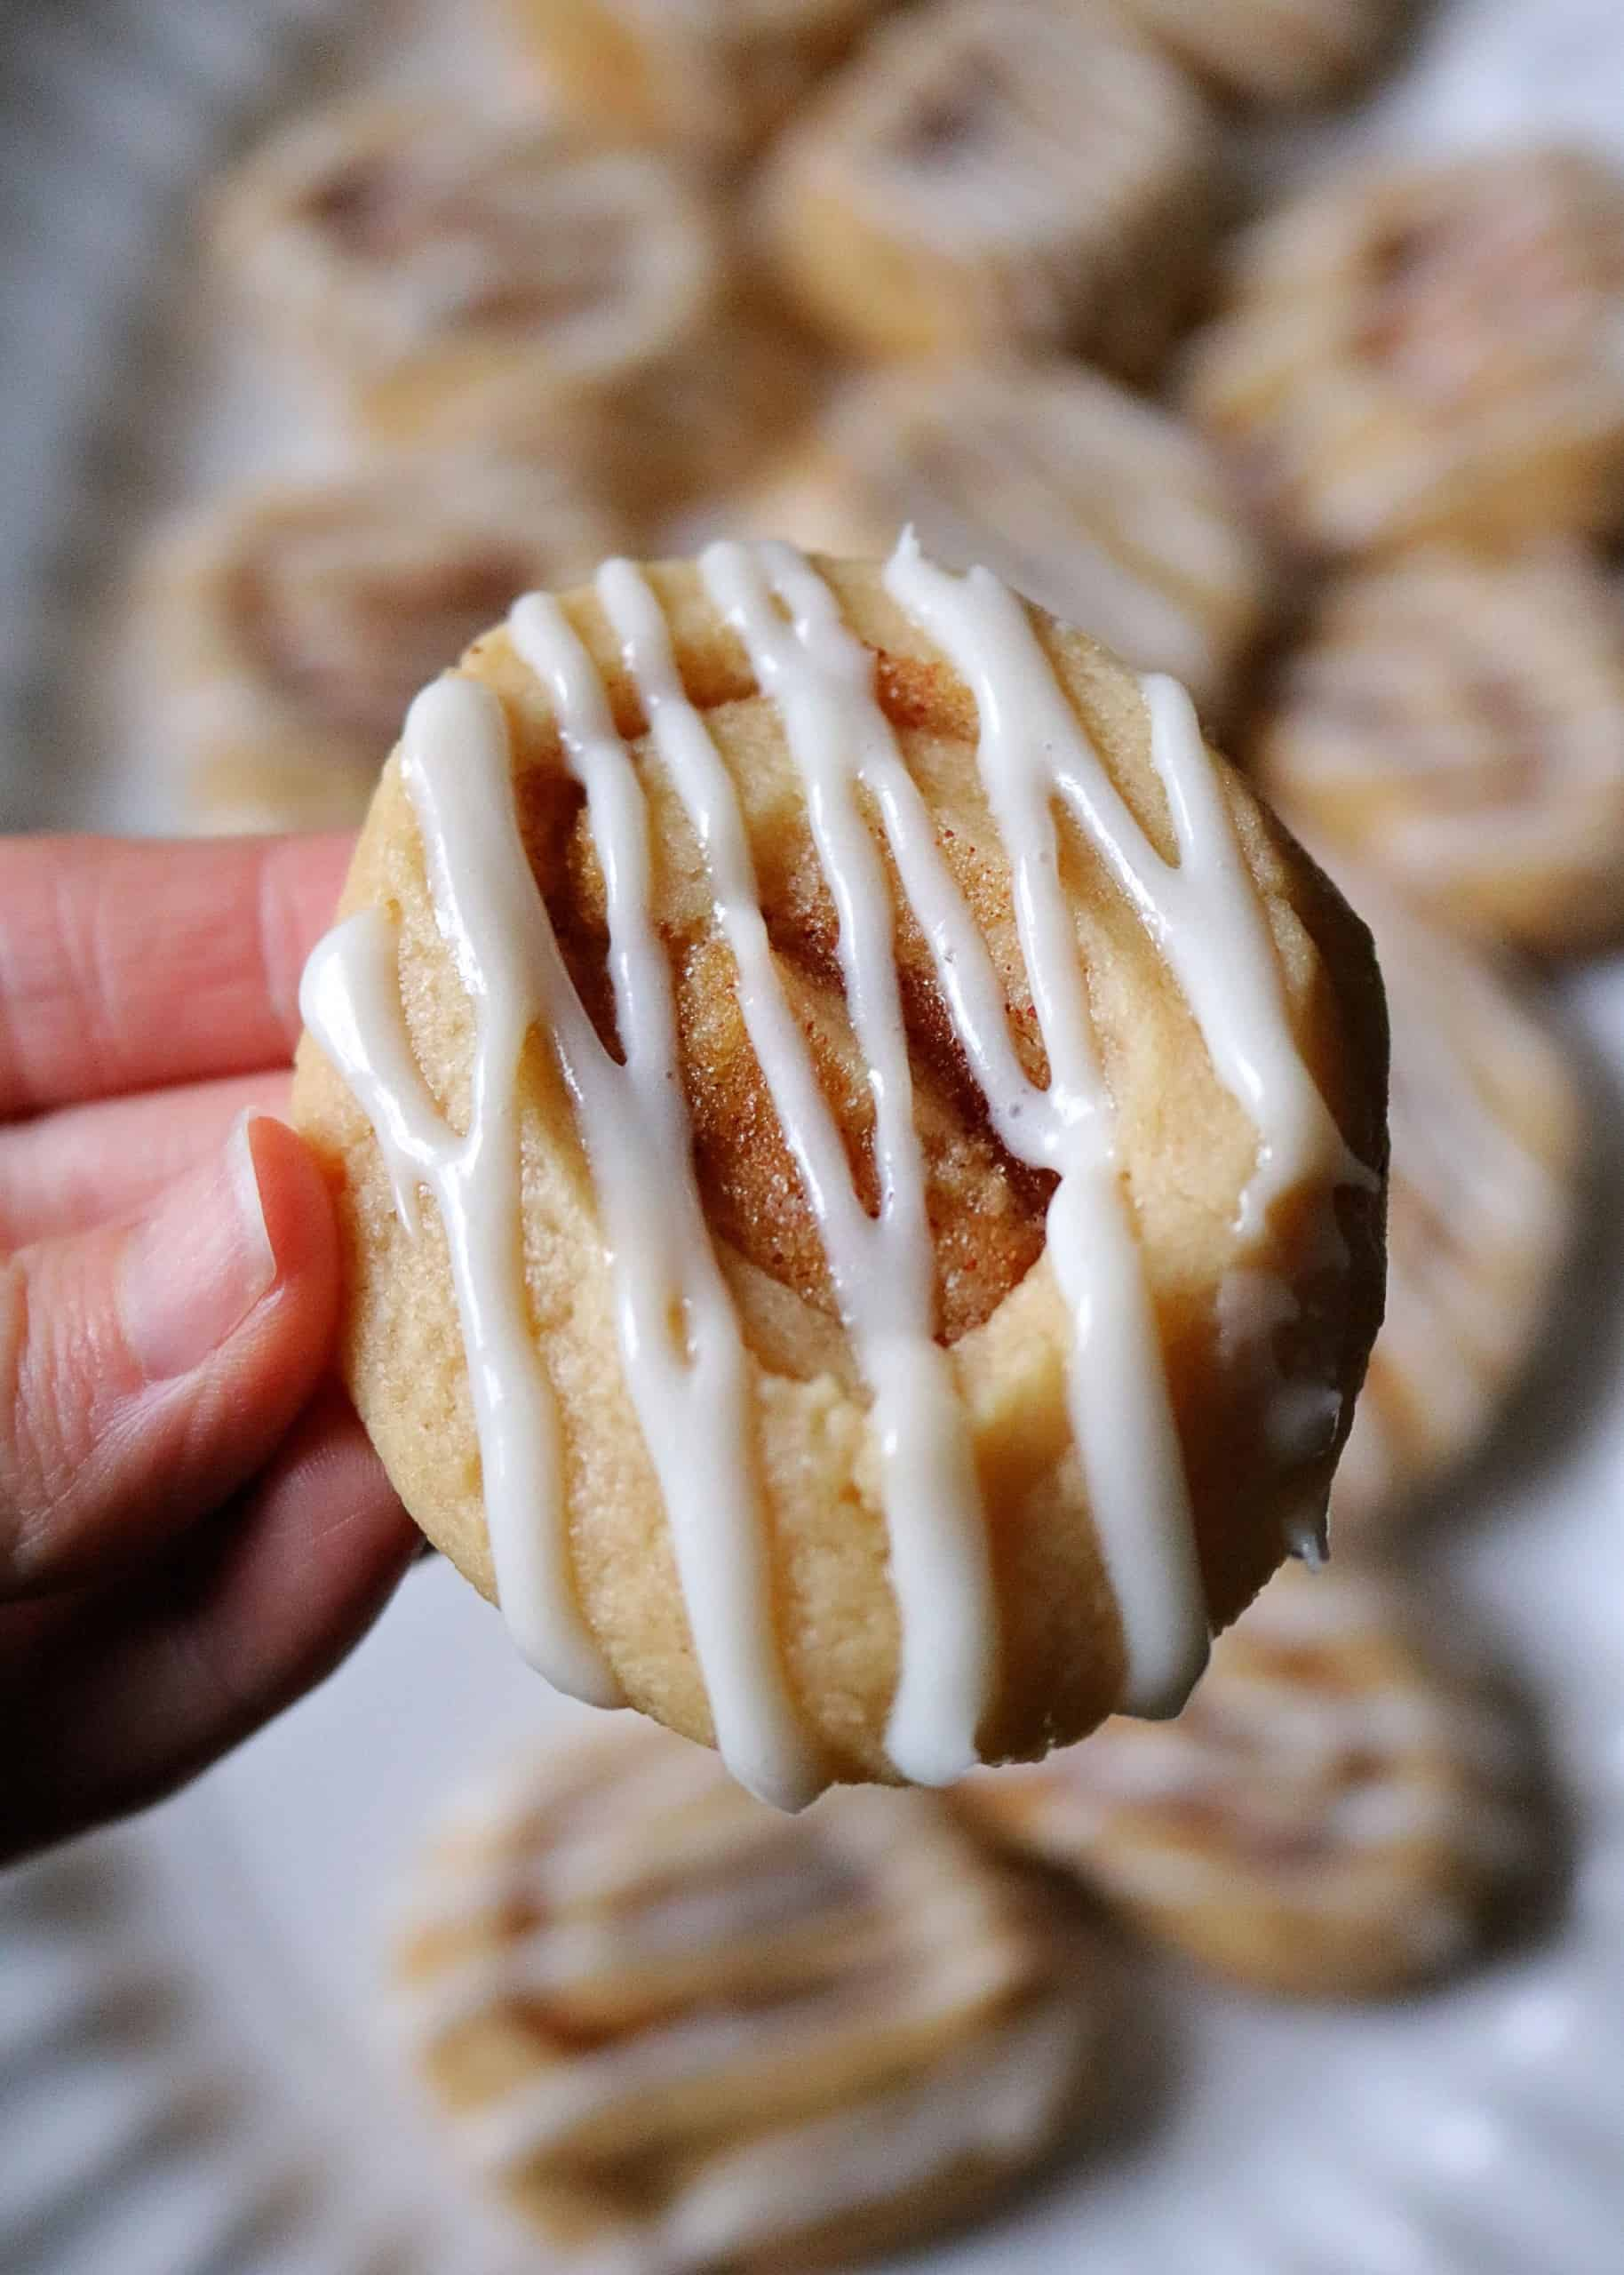 Love soft, gooey Cinnamon Rolls? Then try my delicious and easy homemade cinnamon roll cookies! They feature a soft, buttery sugar cookie with swirls of cinnamon sugar, and cream cheese icing glaze drizzled on top. #cookies #cinnamonrollcookies #christmascookies #baking